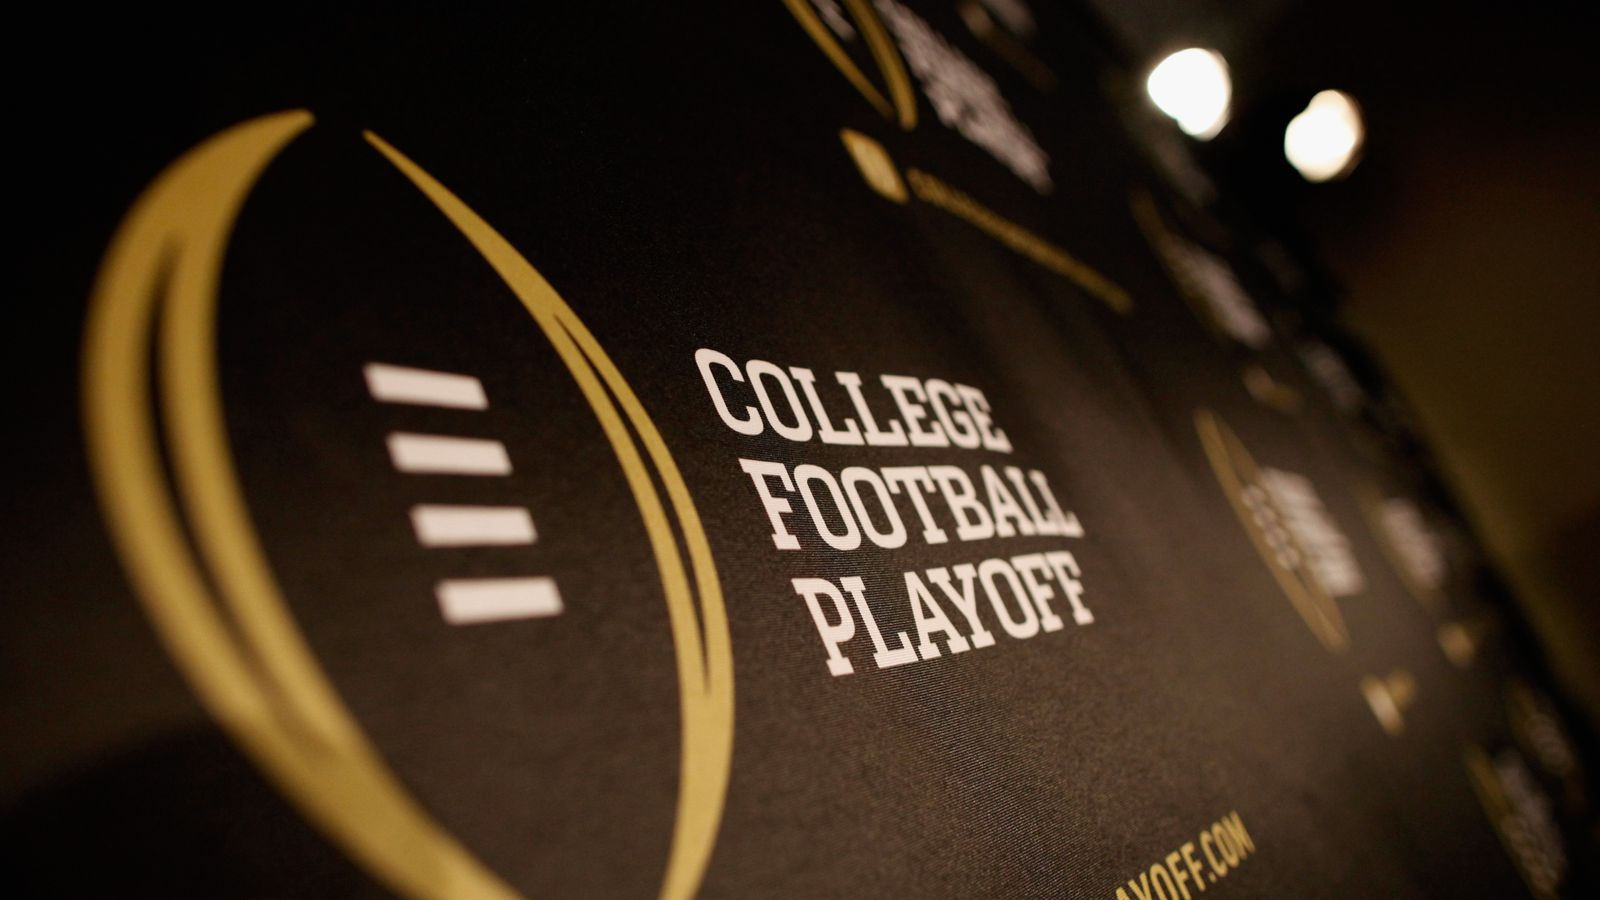 College_football_playoff.0